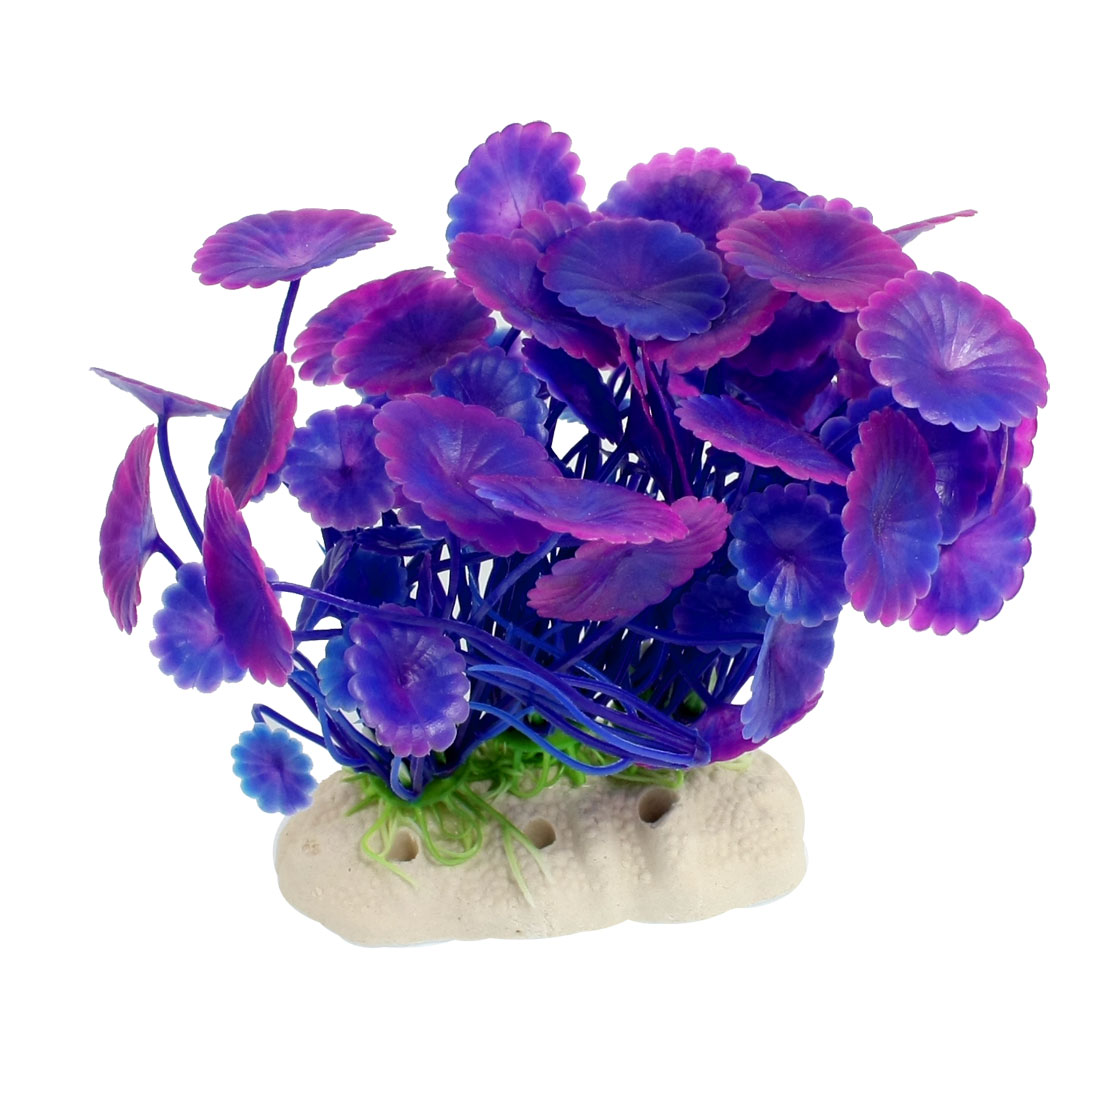 Ceramic Base Purple Plastic Manmade Fish Tank Water Grass Aquatic Plants 4.4""